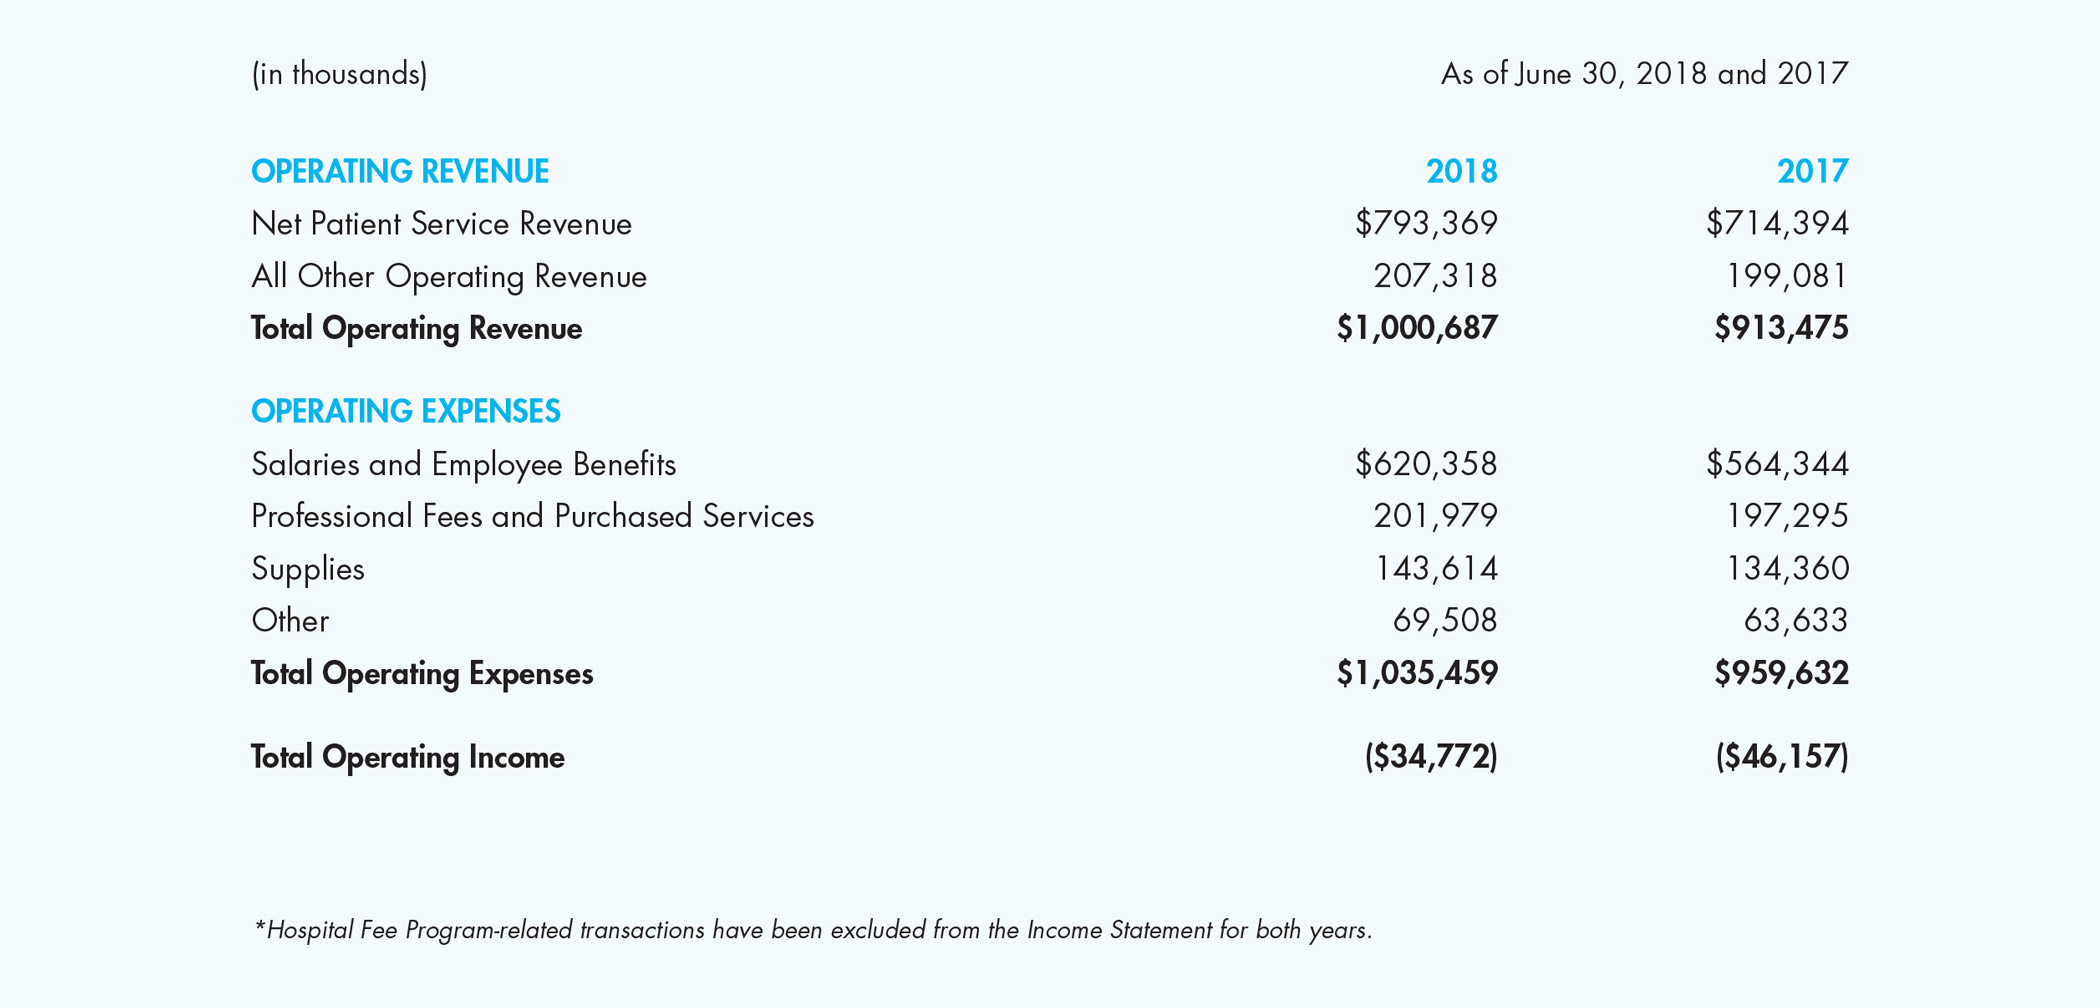 CHLA-2018-Annual-Report-Financial-Summary-Income-Statement-01.jpg